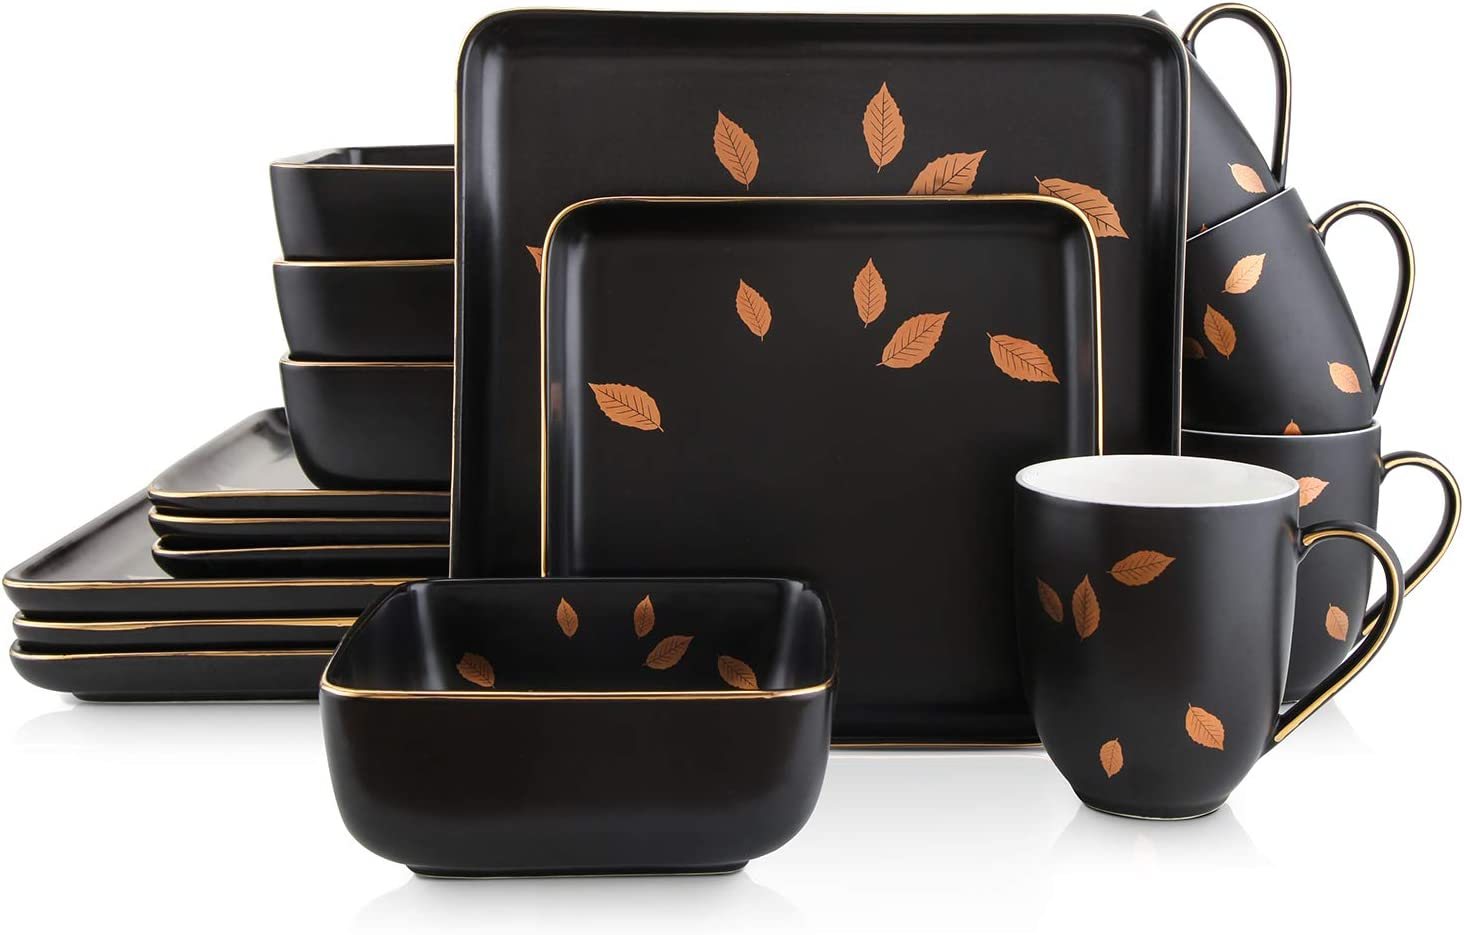 Stone Tucson Mall Lain Gold Leaves Square Set Service Dinnerware Animer and price revision Porcelain